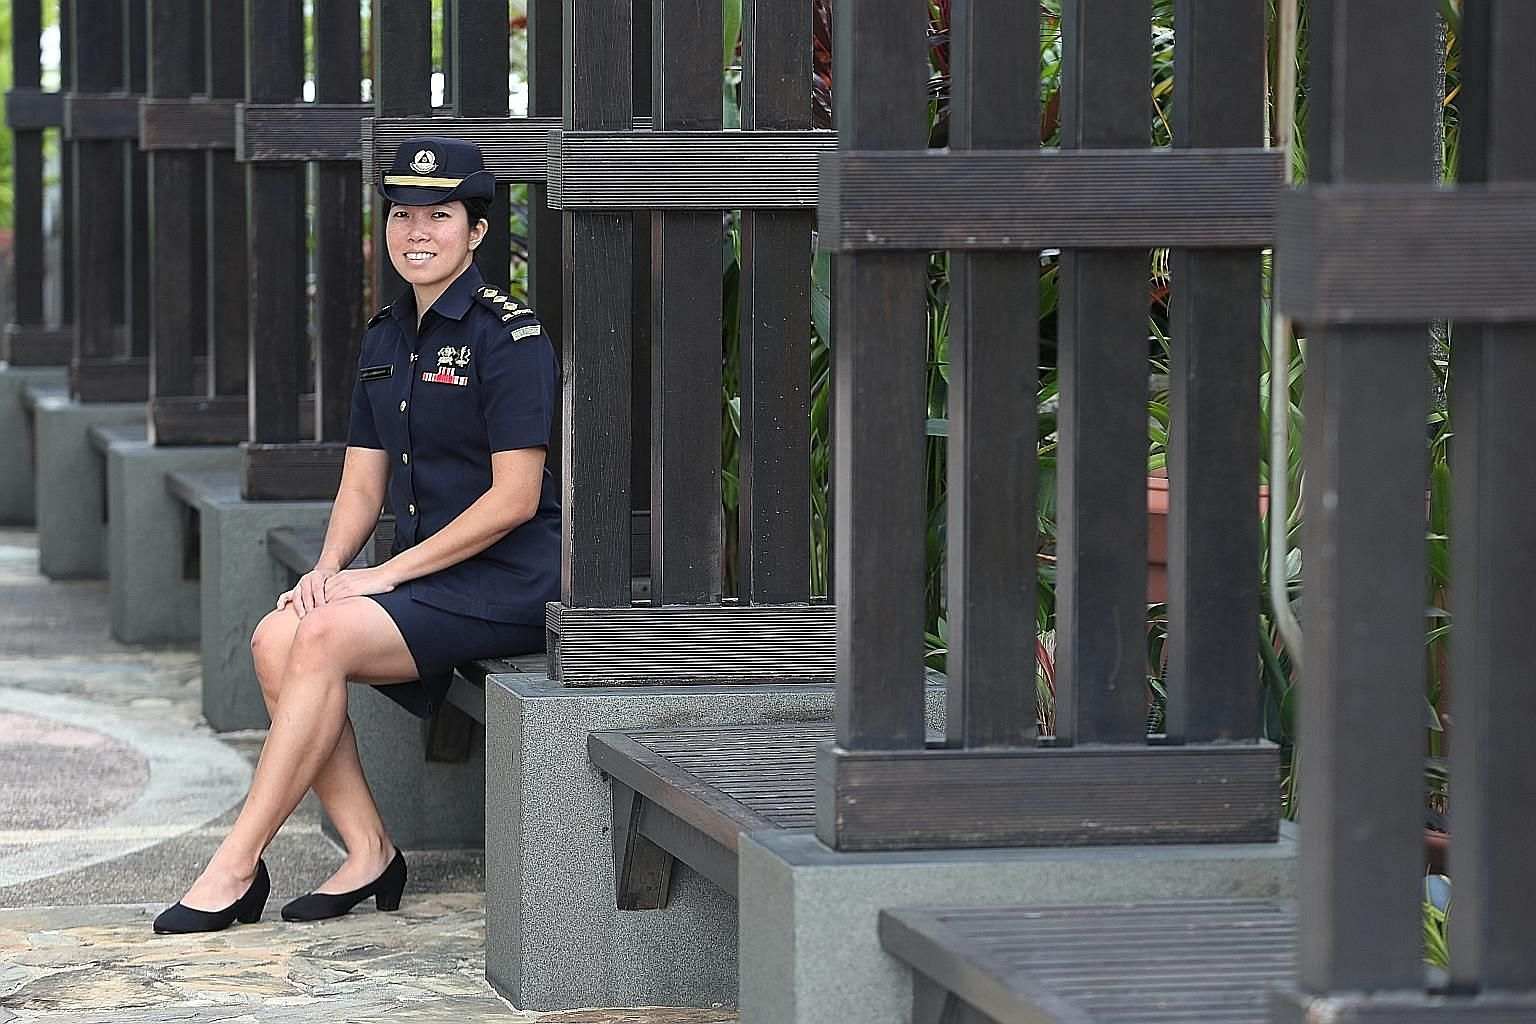 SCDF officer Amelia Lim is a member of the Asean Emergency Response and Assessment Team and also a certified leader in disaster management. ST PHOTO: TIMOTHY DAVID